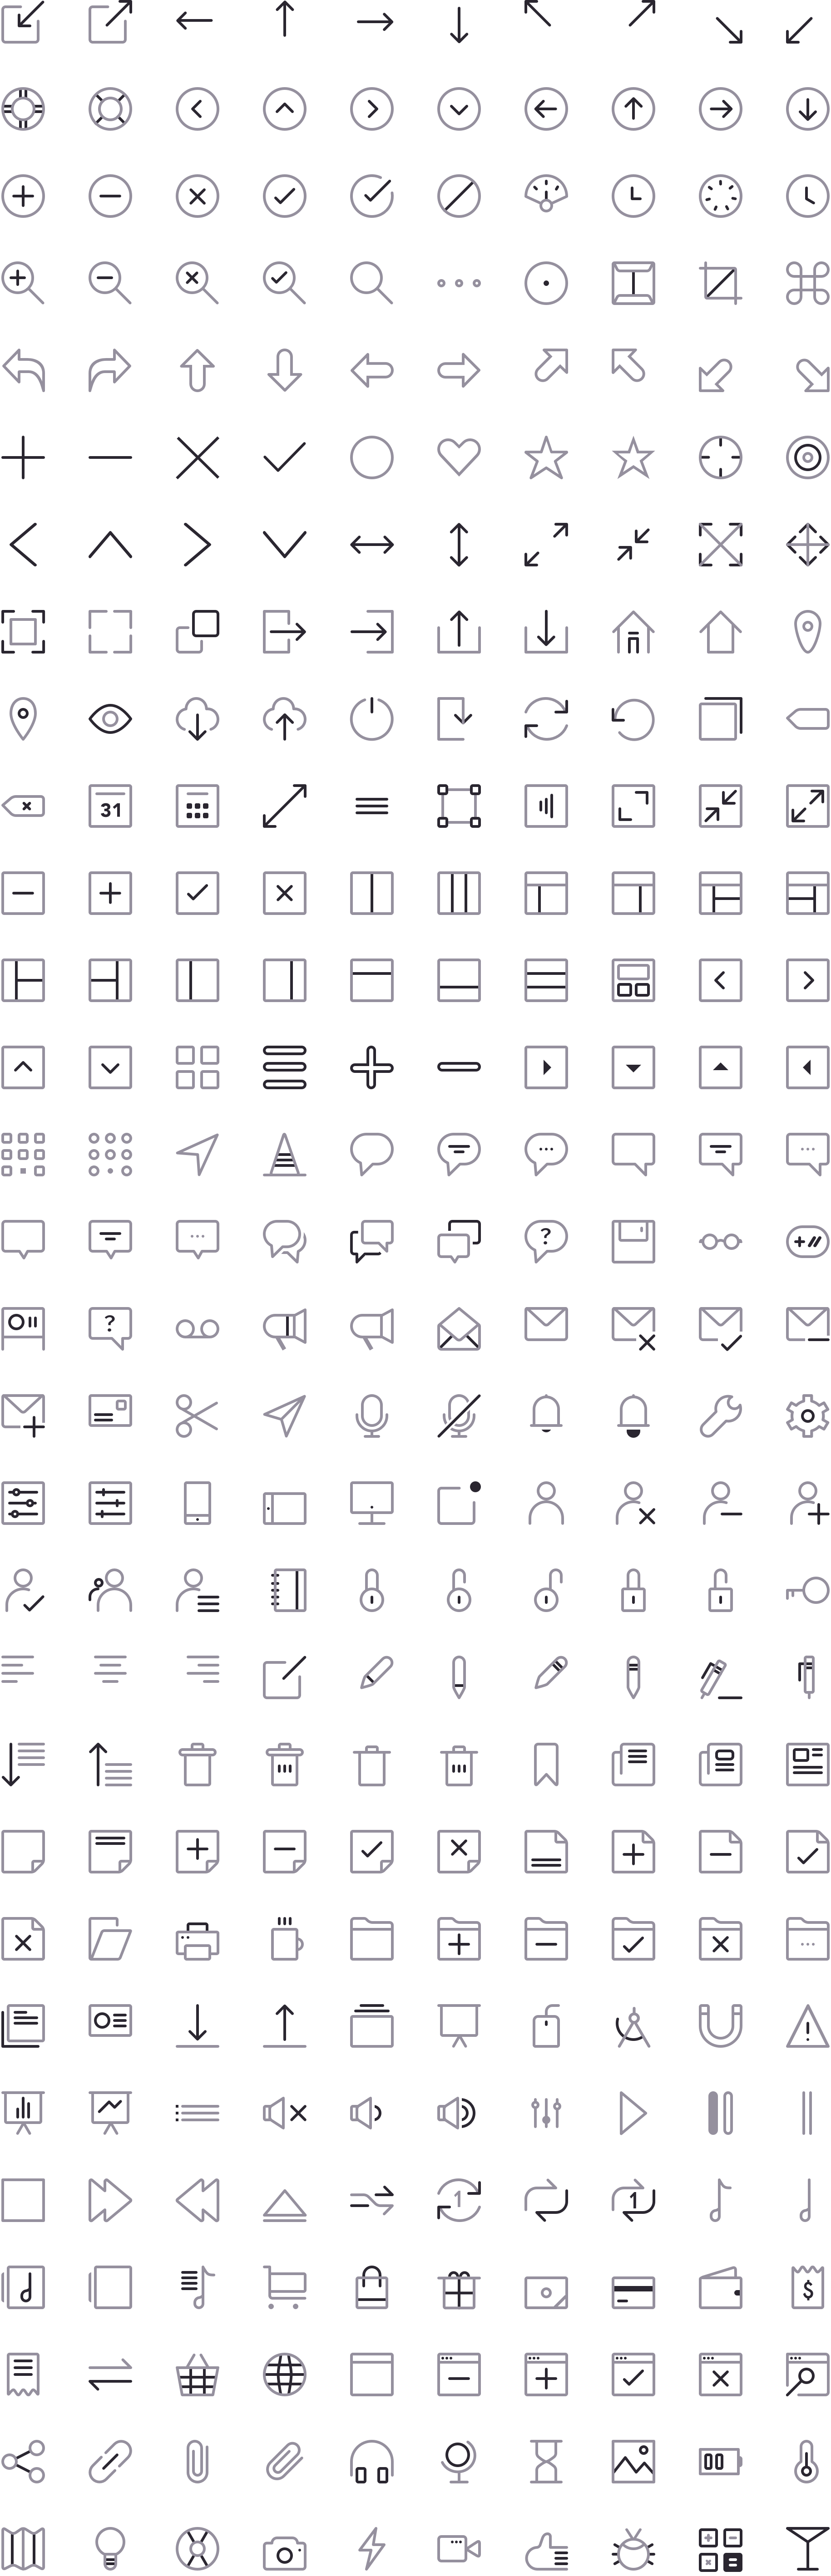 Free Download  CompassCons 20 Sketch Icons   Sketch icon, Icon ...